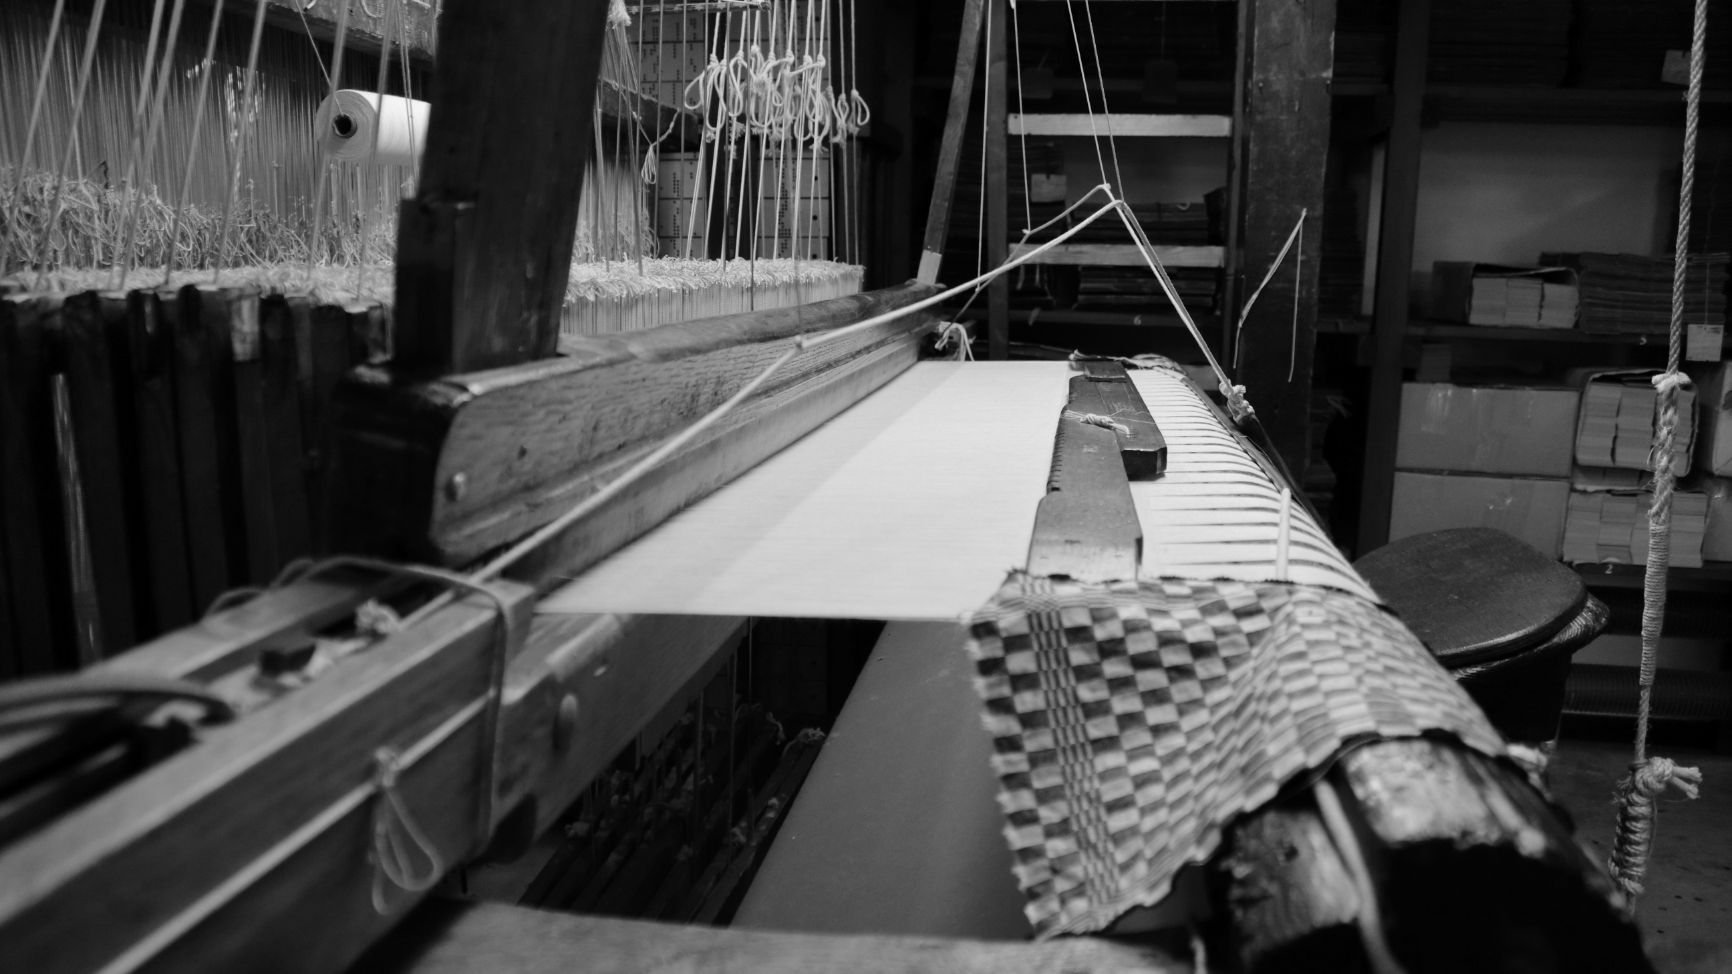 Process of weaving Leela yoga rugs